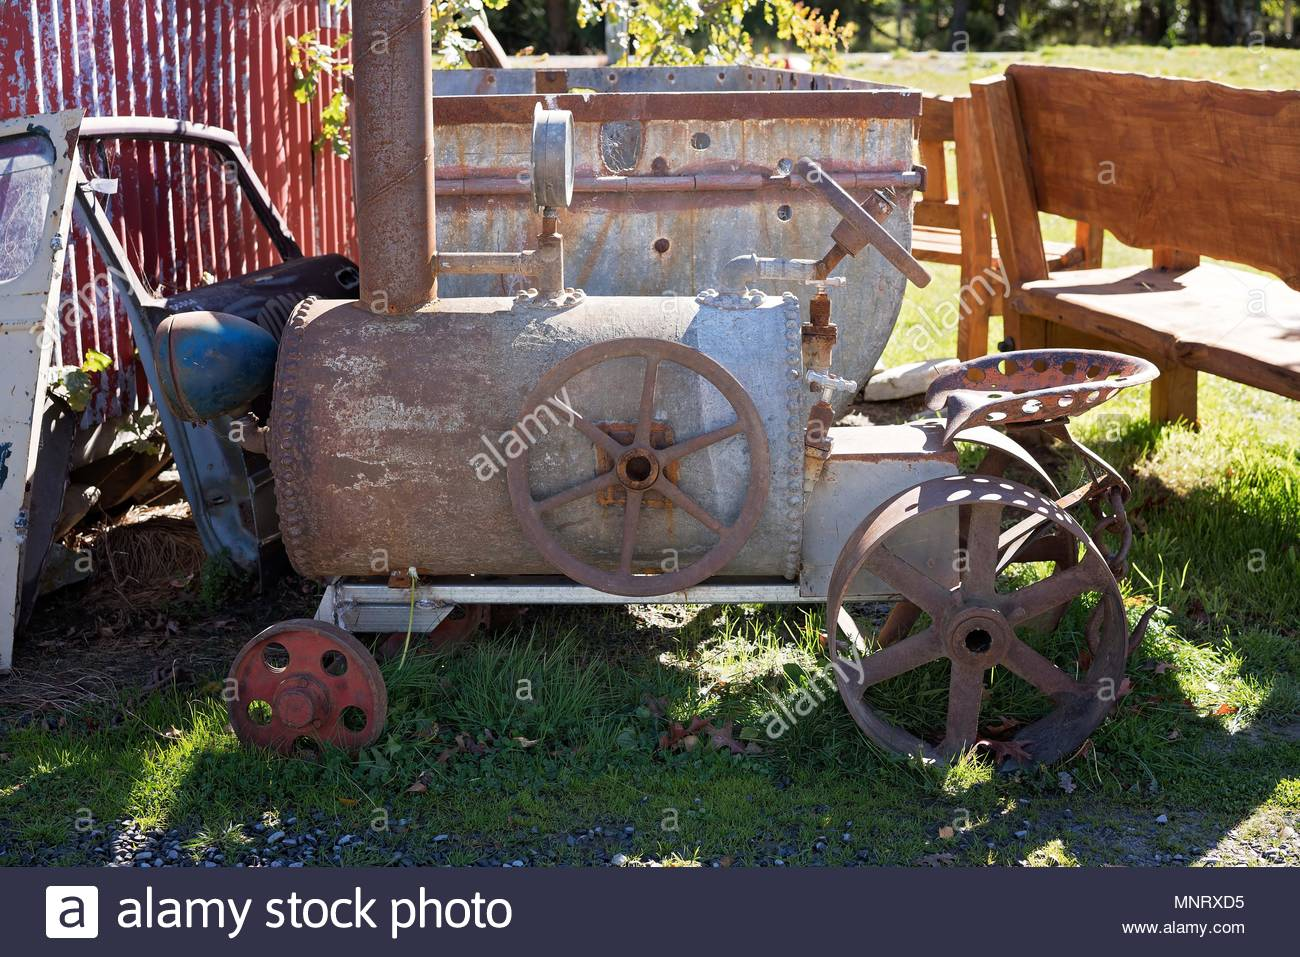 An Old Rusted Tractor From A Bygone Era Sitting Unused And Forgotten - Stock Image